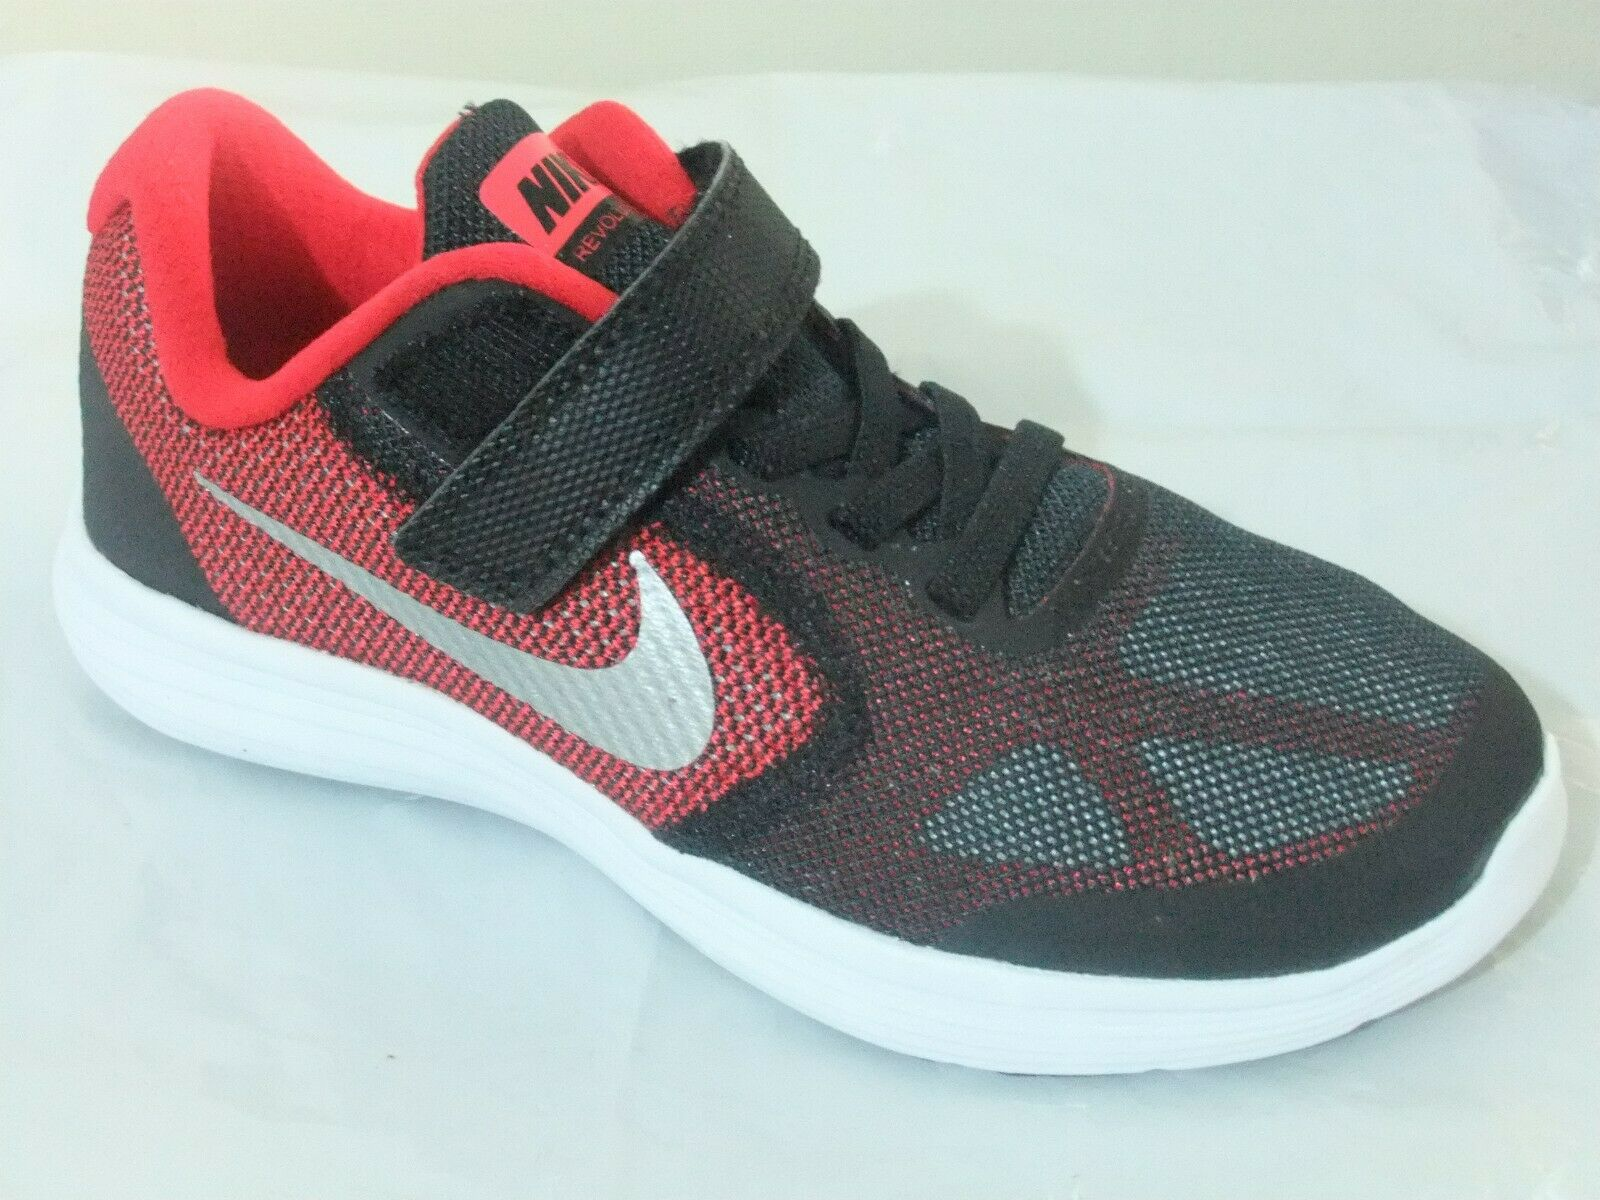 NIKE REVOLUTION 3 BOYS STRAP UP SHOES TRAINERS UK SIZE 11 - 2.5   819414 600